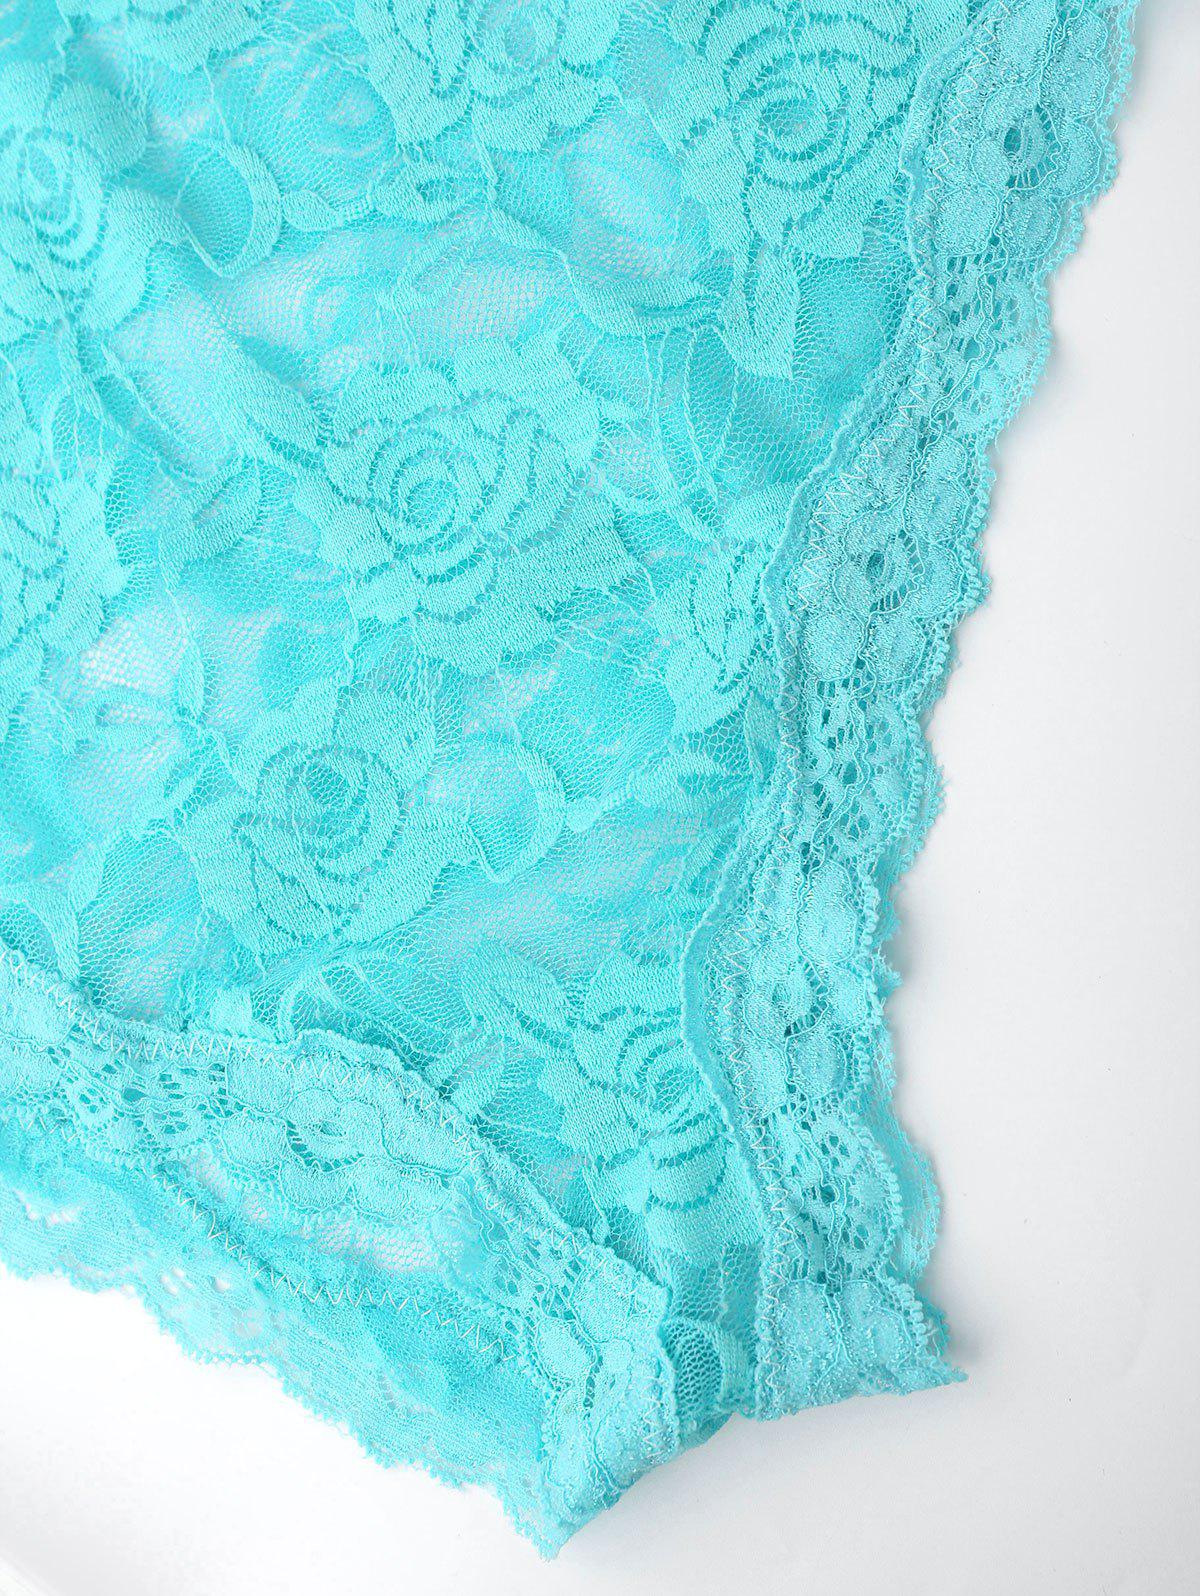 Spaghetti Strap Lace Sheer Teddy - Turquoise 2XL